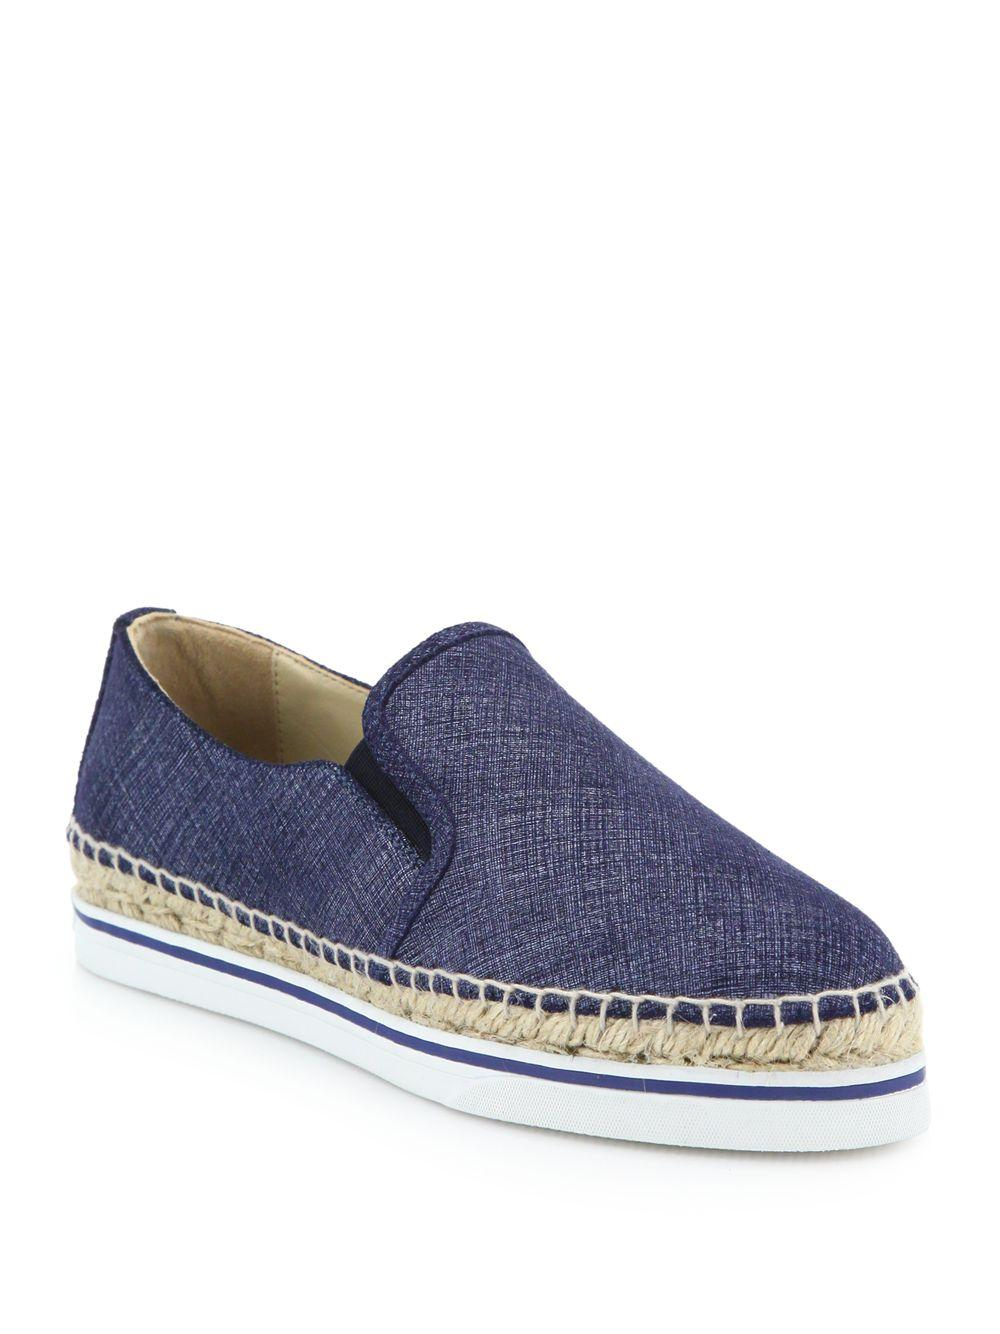 Jimmy Choo Dawn Denim Leather Espadrille Sneakers In Blue